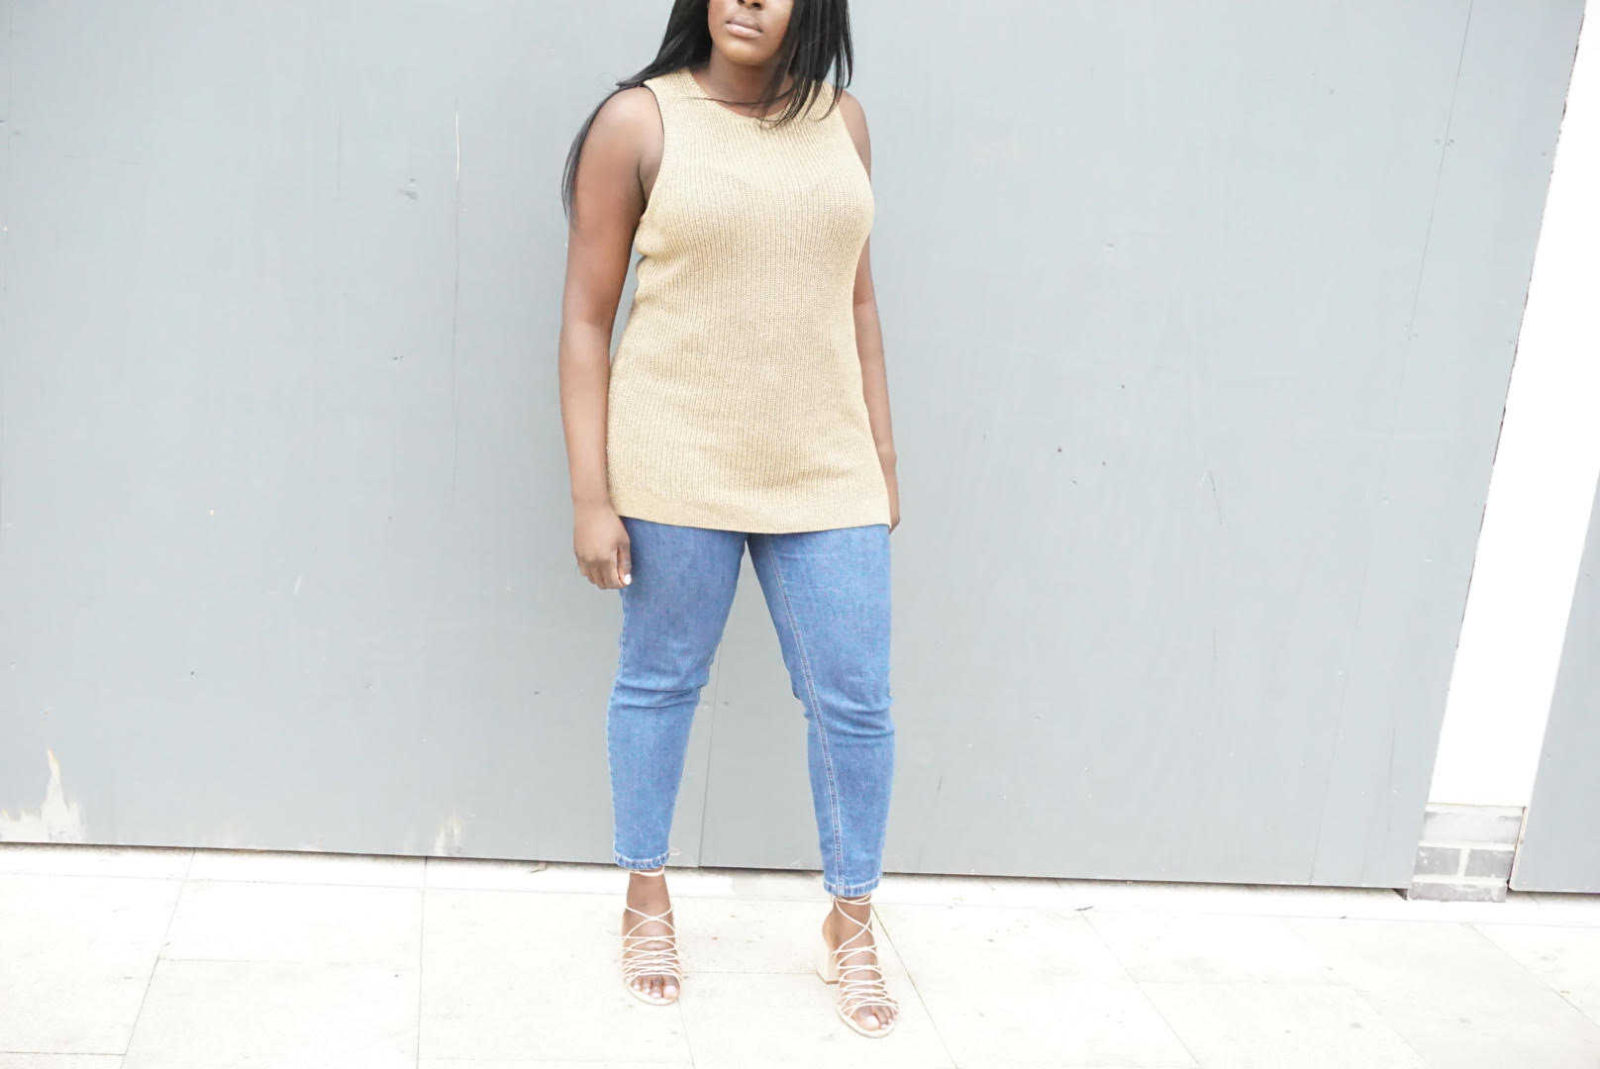 The Gold Sleeveless Top 2 - Style and the Sass